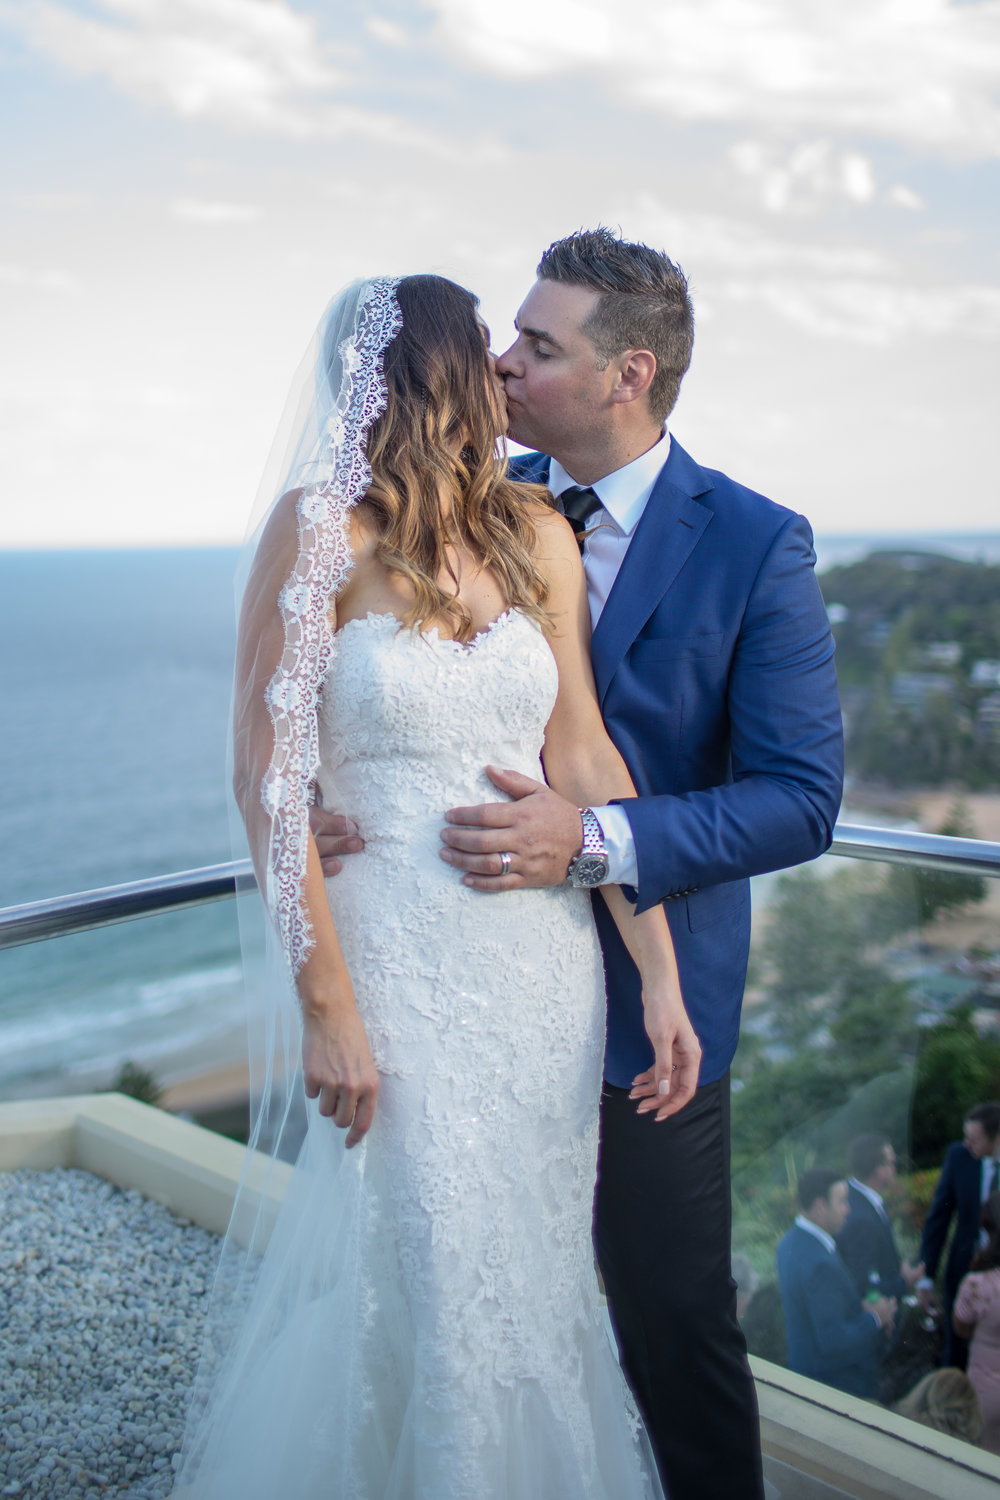 weddings-jonahs-beach-wedding-photographer-1800829994.JPG